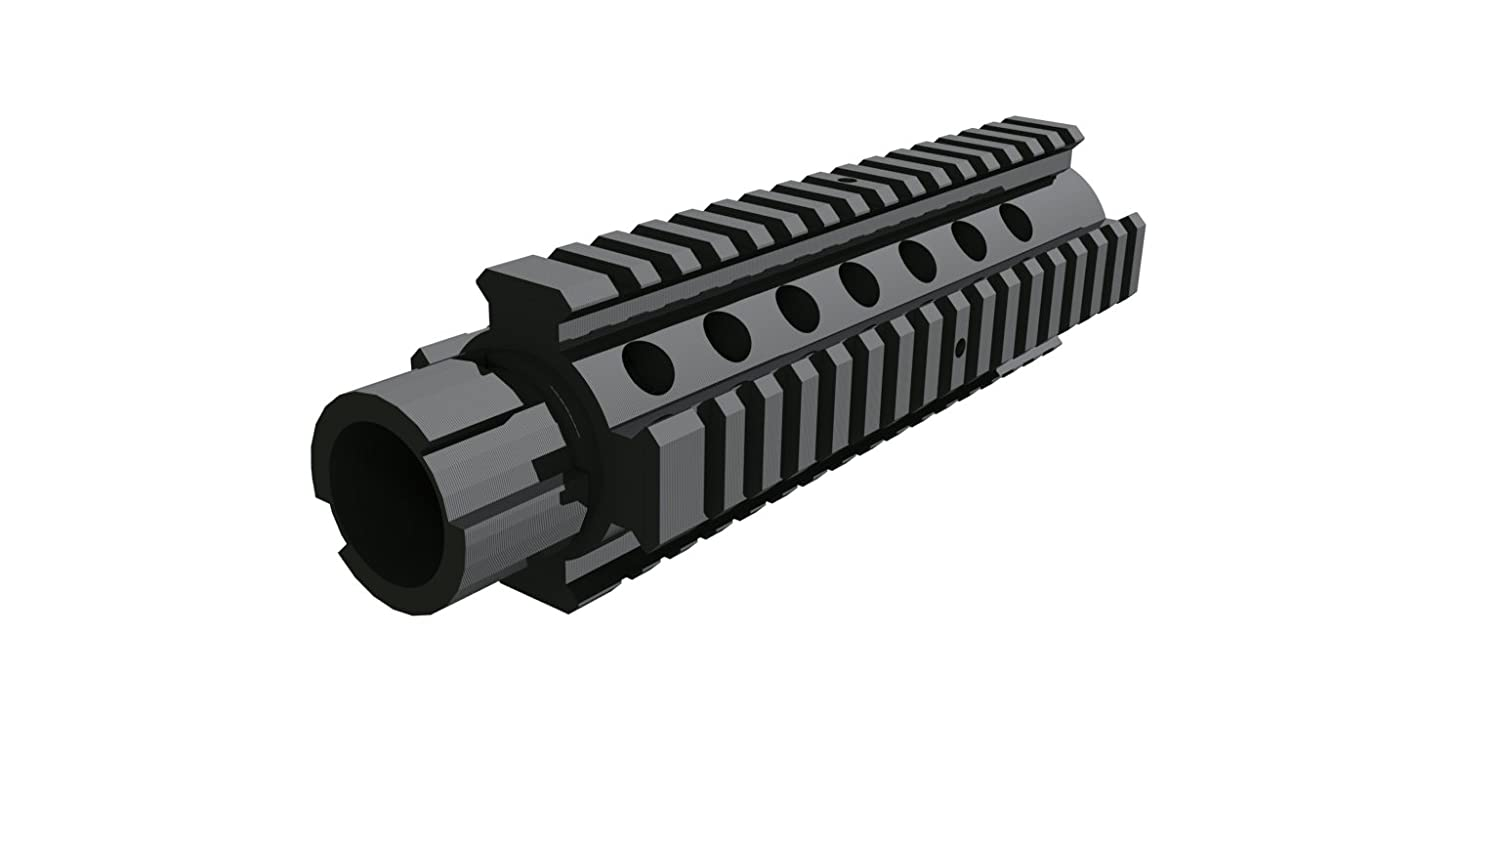 3D Printed M4 Barrel Extension for Nerf Models with an Interchangeable  Barrel Compatible with N-Strike Stryfe Longshot Mediator Recon and More! -  (Not